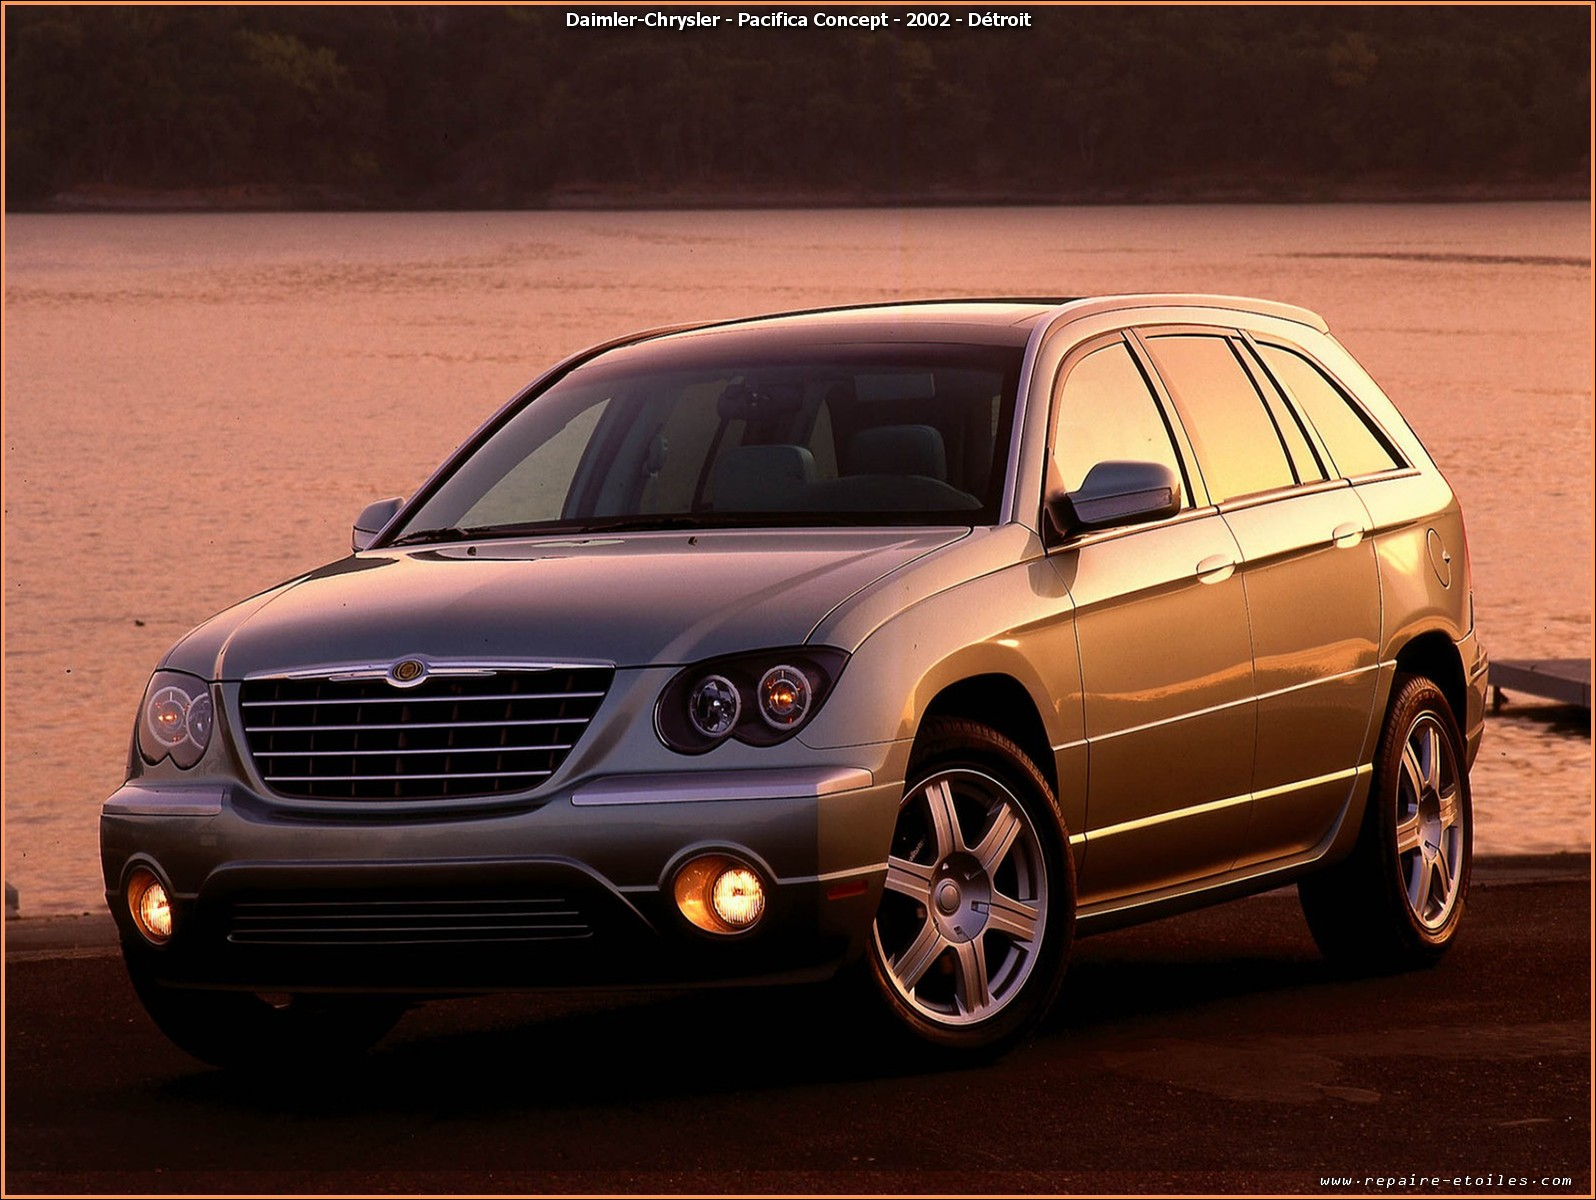 daimler chrysler Free essay: questions and answers 1 what are the strengths and weaknesses of daimler-chrysler's strategy there are several strengths of daimler-chrysler's.